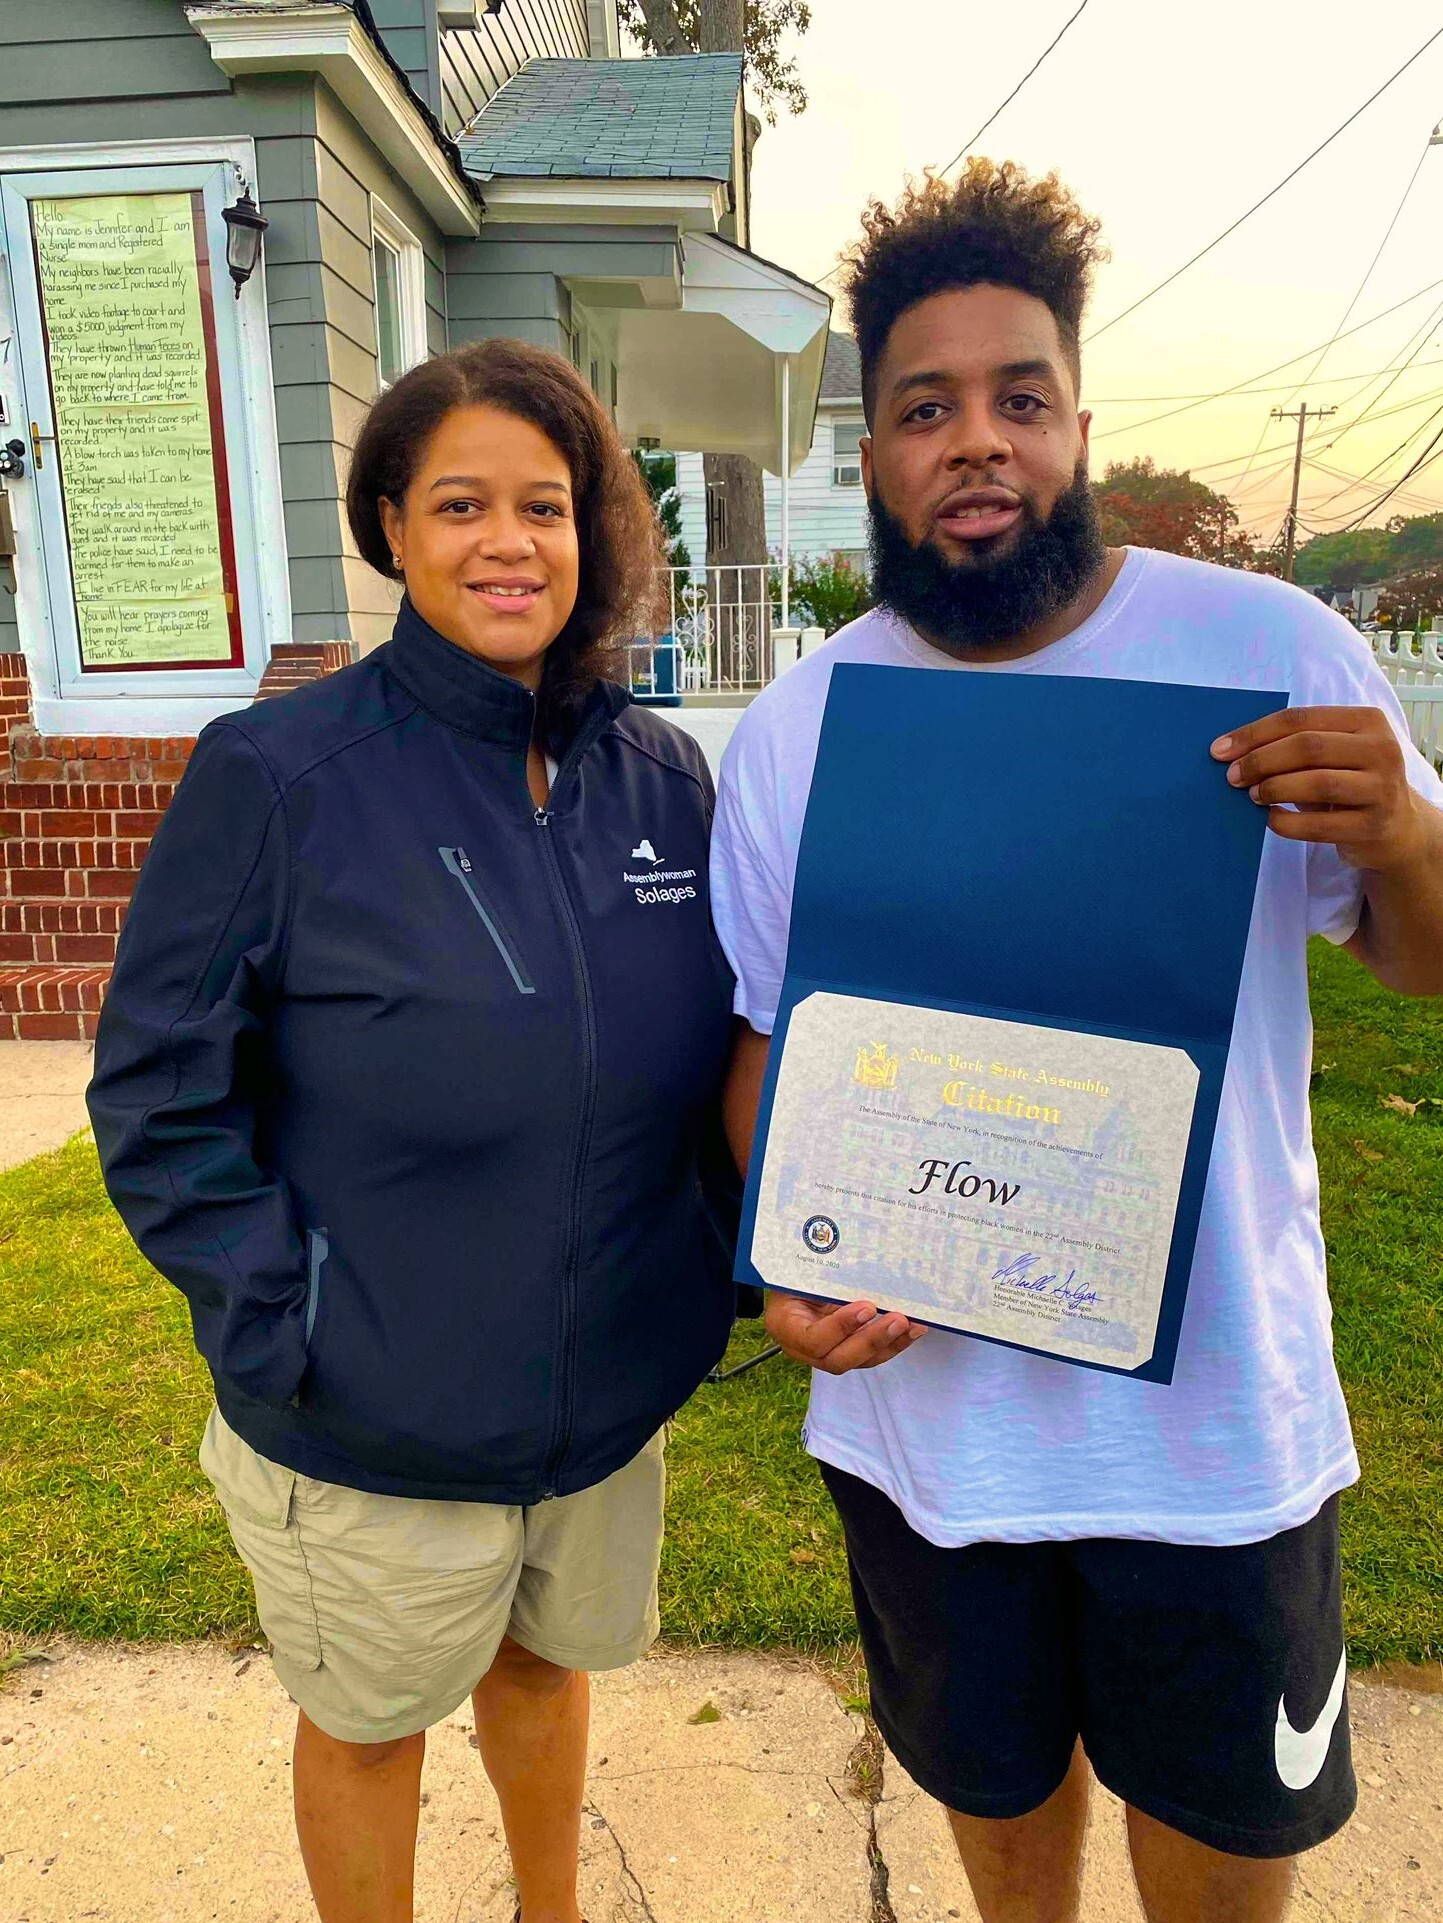 Assemblywoman Michaelle Solages joined community activist FLOW to commemorate his 30th day of watching over Jennifer McLeggan and her home. FLOW has shown great leadership in this unfortunate situatio